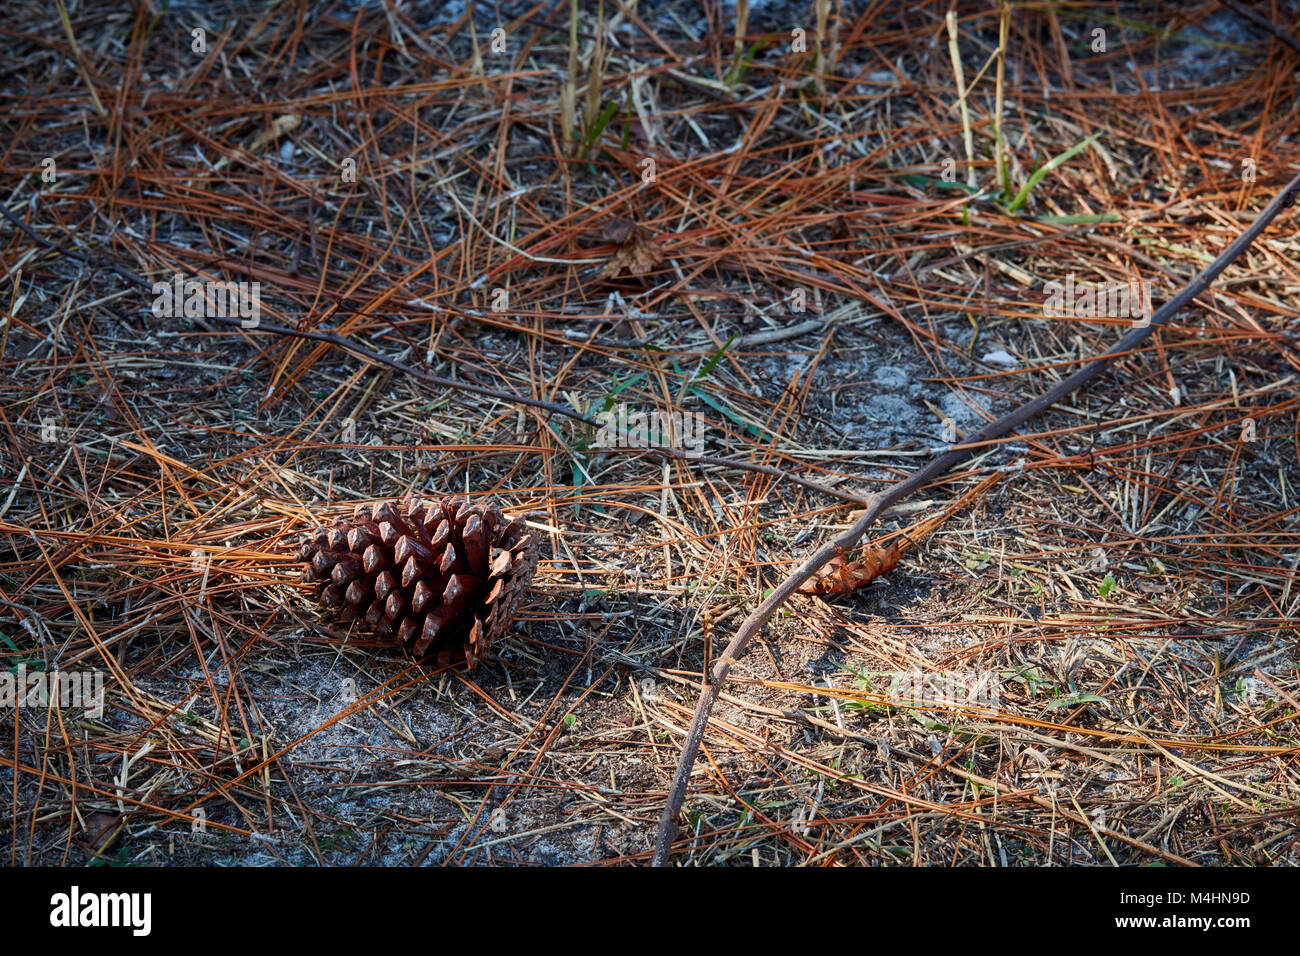 Pinecone and forest floor, Gulf State Park, Alabama Stock Photo